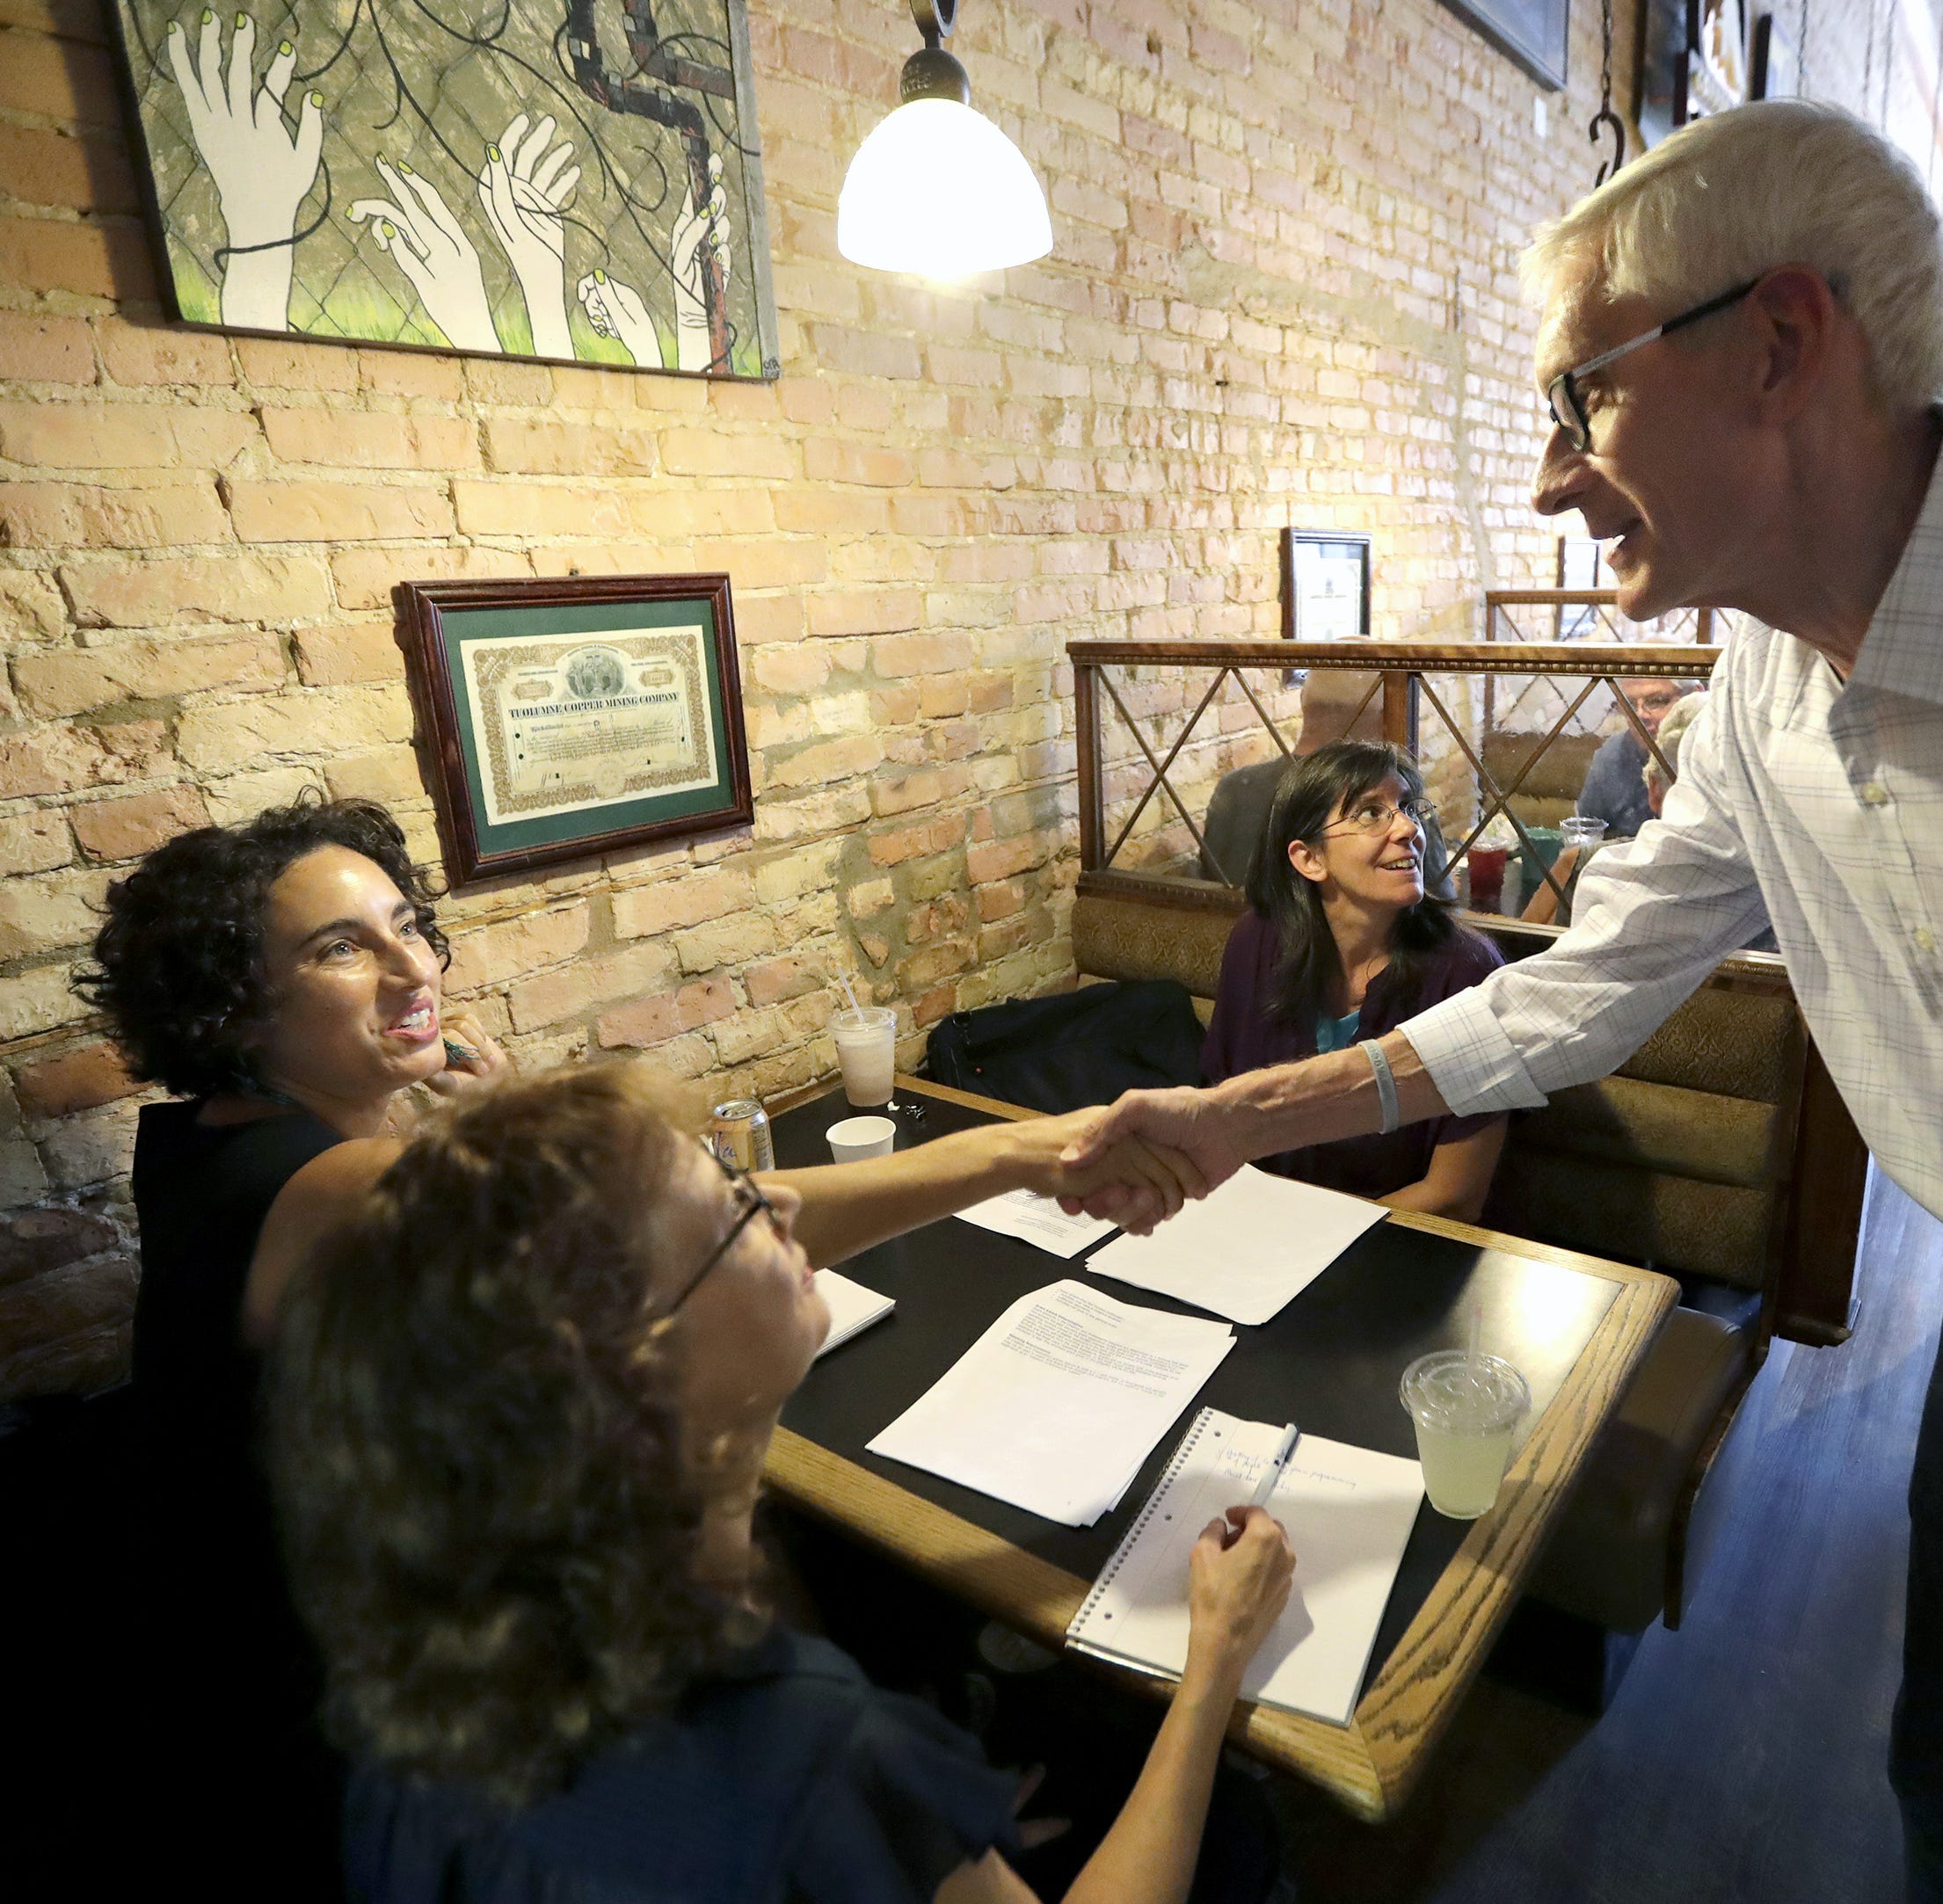 Tony Evers makes campaign swing through Appleton, criticizes Gov. Walker's performance